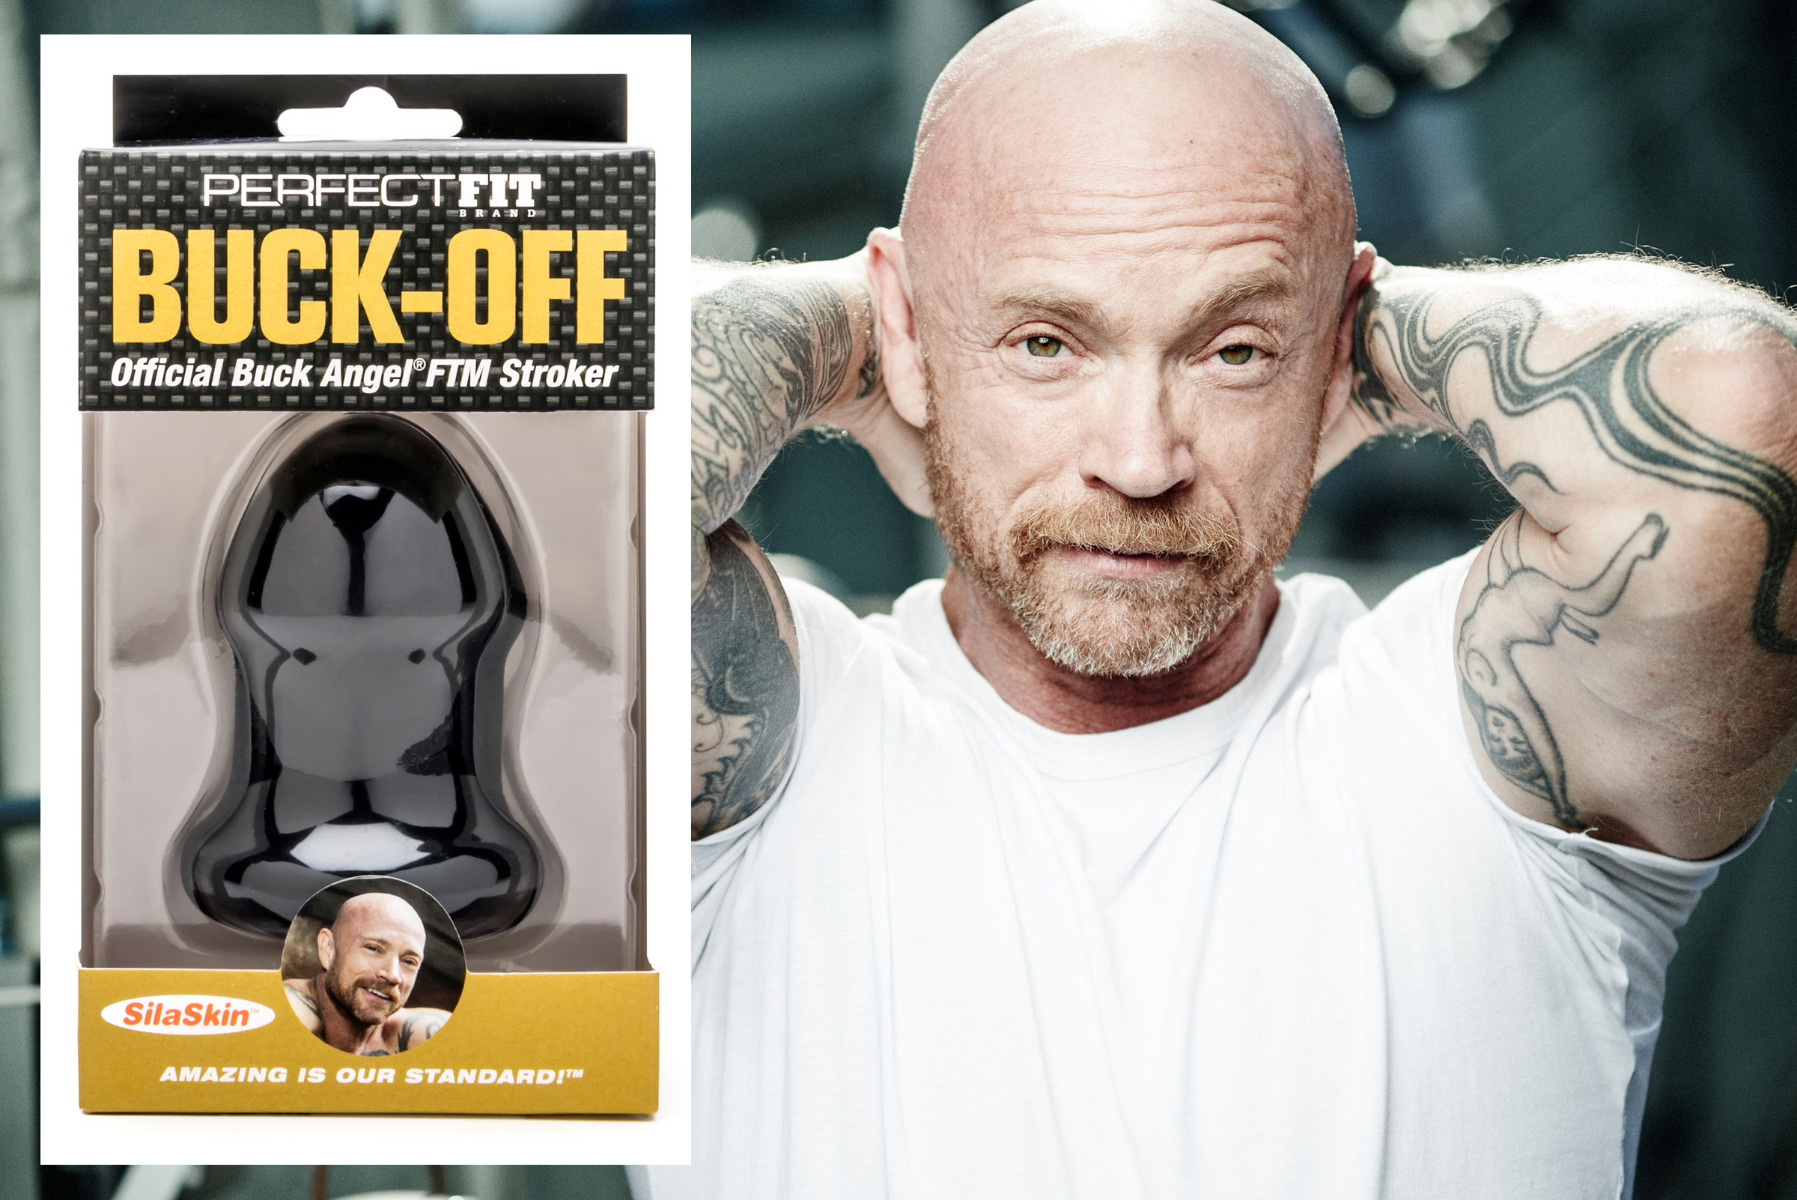 Buck Angel by Hans Rosemond and the Buck-Off package